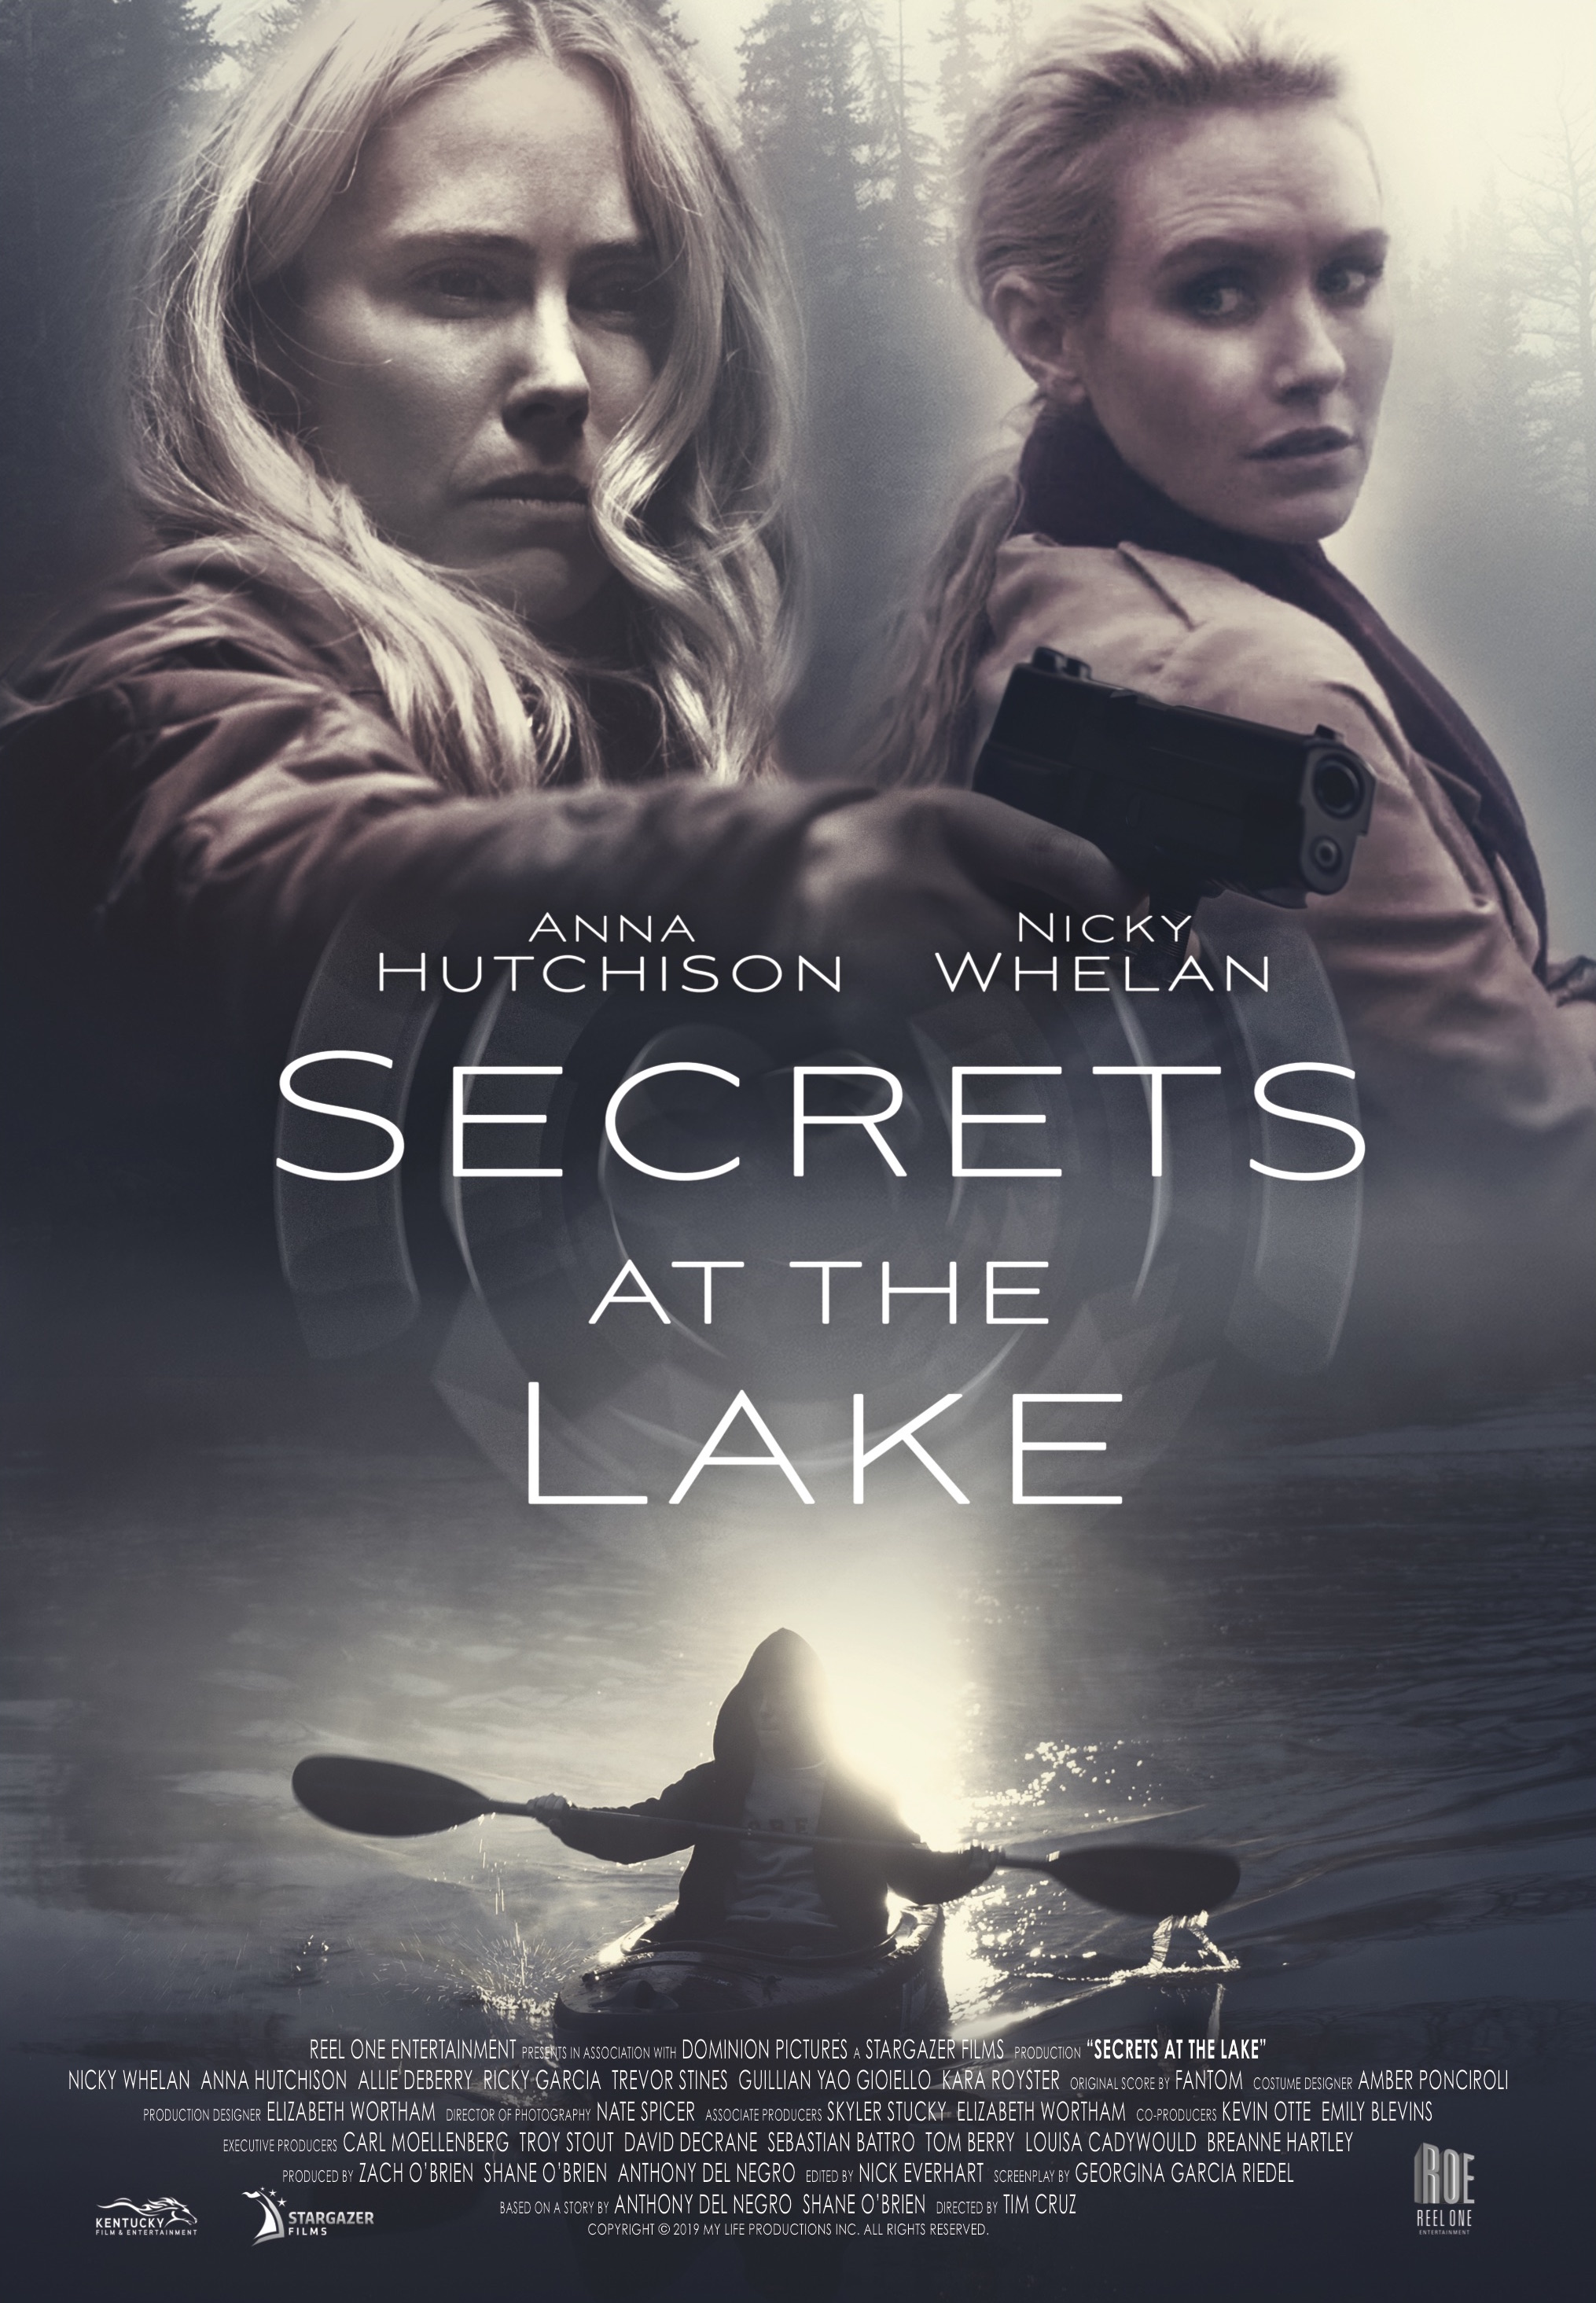 Anna Hutchison and Nicky Whelan in Secrets at the Lake (2019)